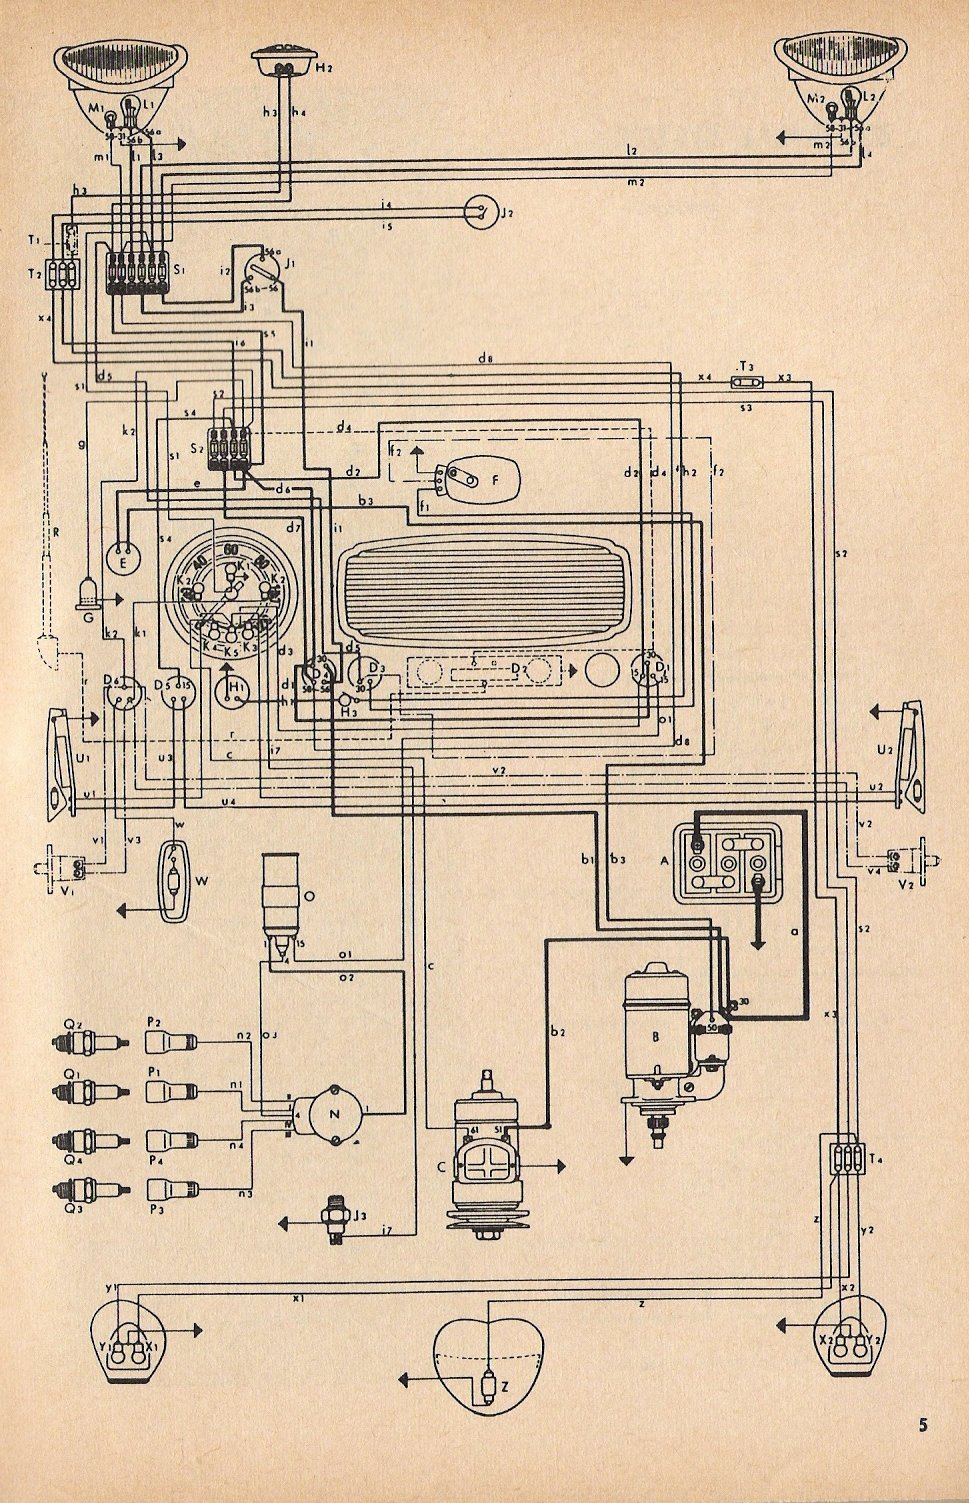 1965 Vw Beetle Wiring Diagram Reinvent Your 1968 Flasher Relay Thesamba Com Type 1 Diagrams Rh 2002 1967